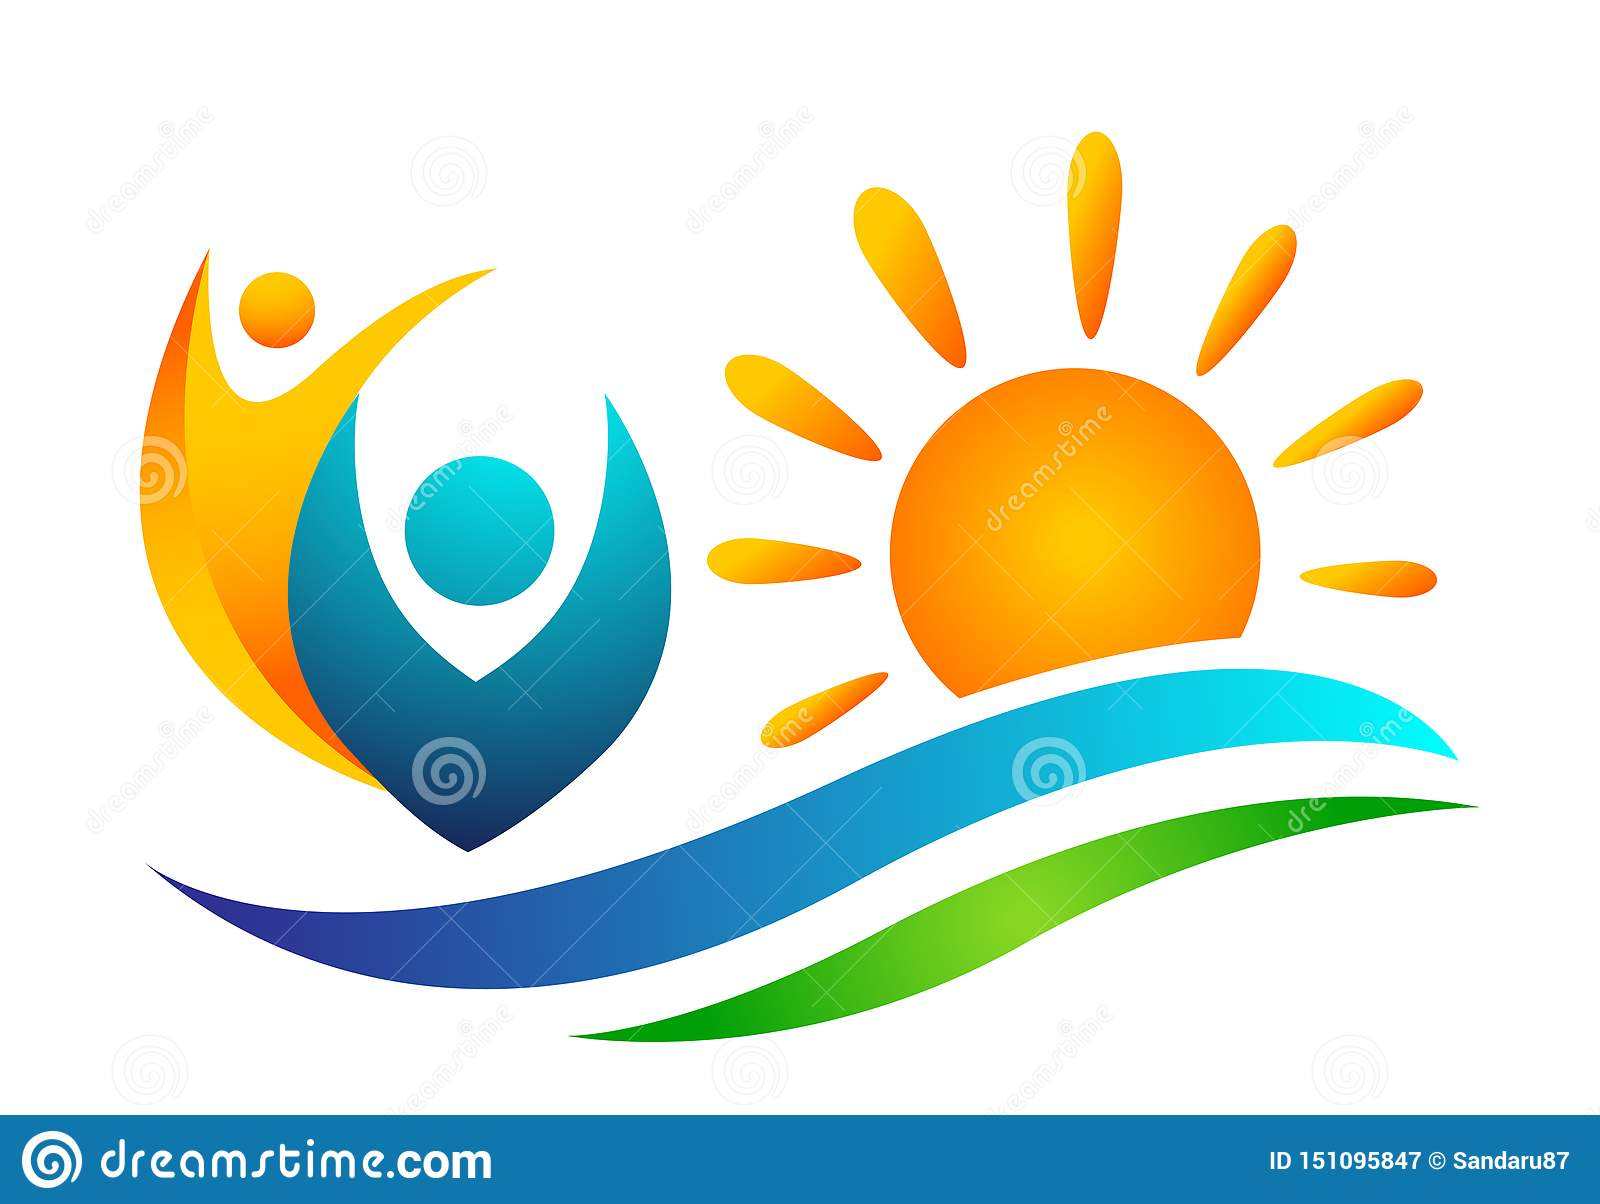 Sun beach water wave people team work union wellness celebration boat concept symbol icon design vector on white background